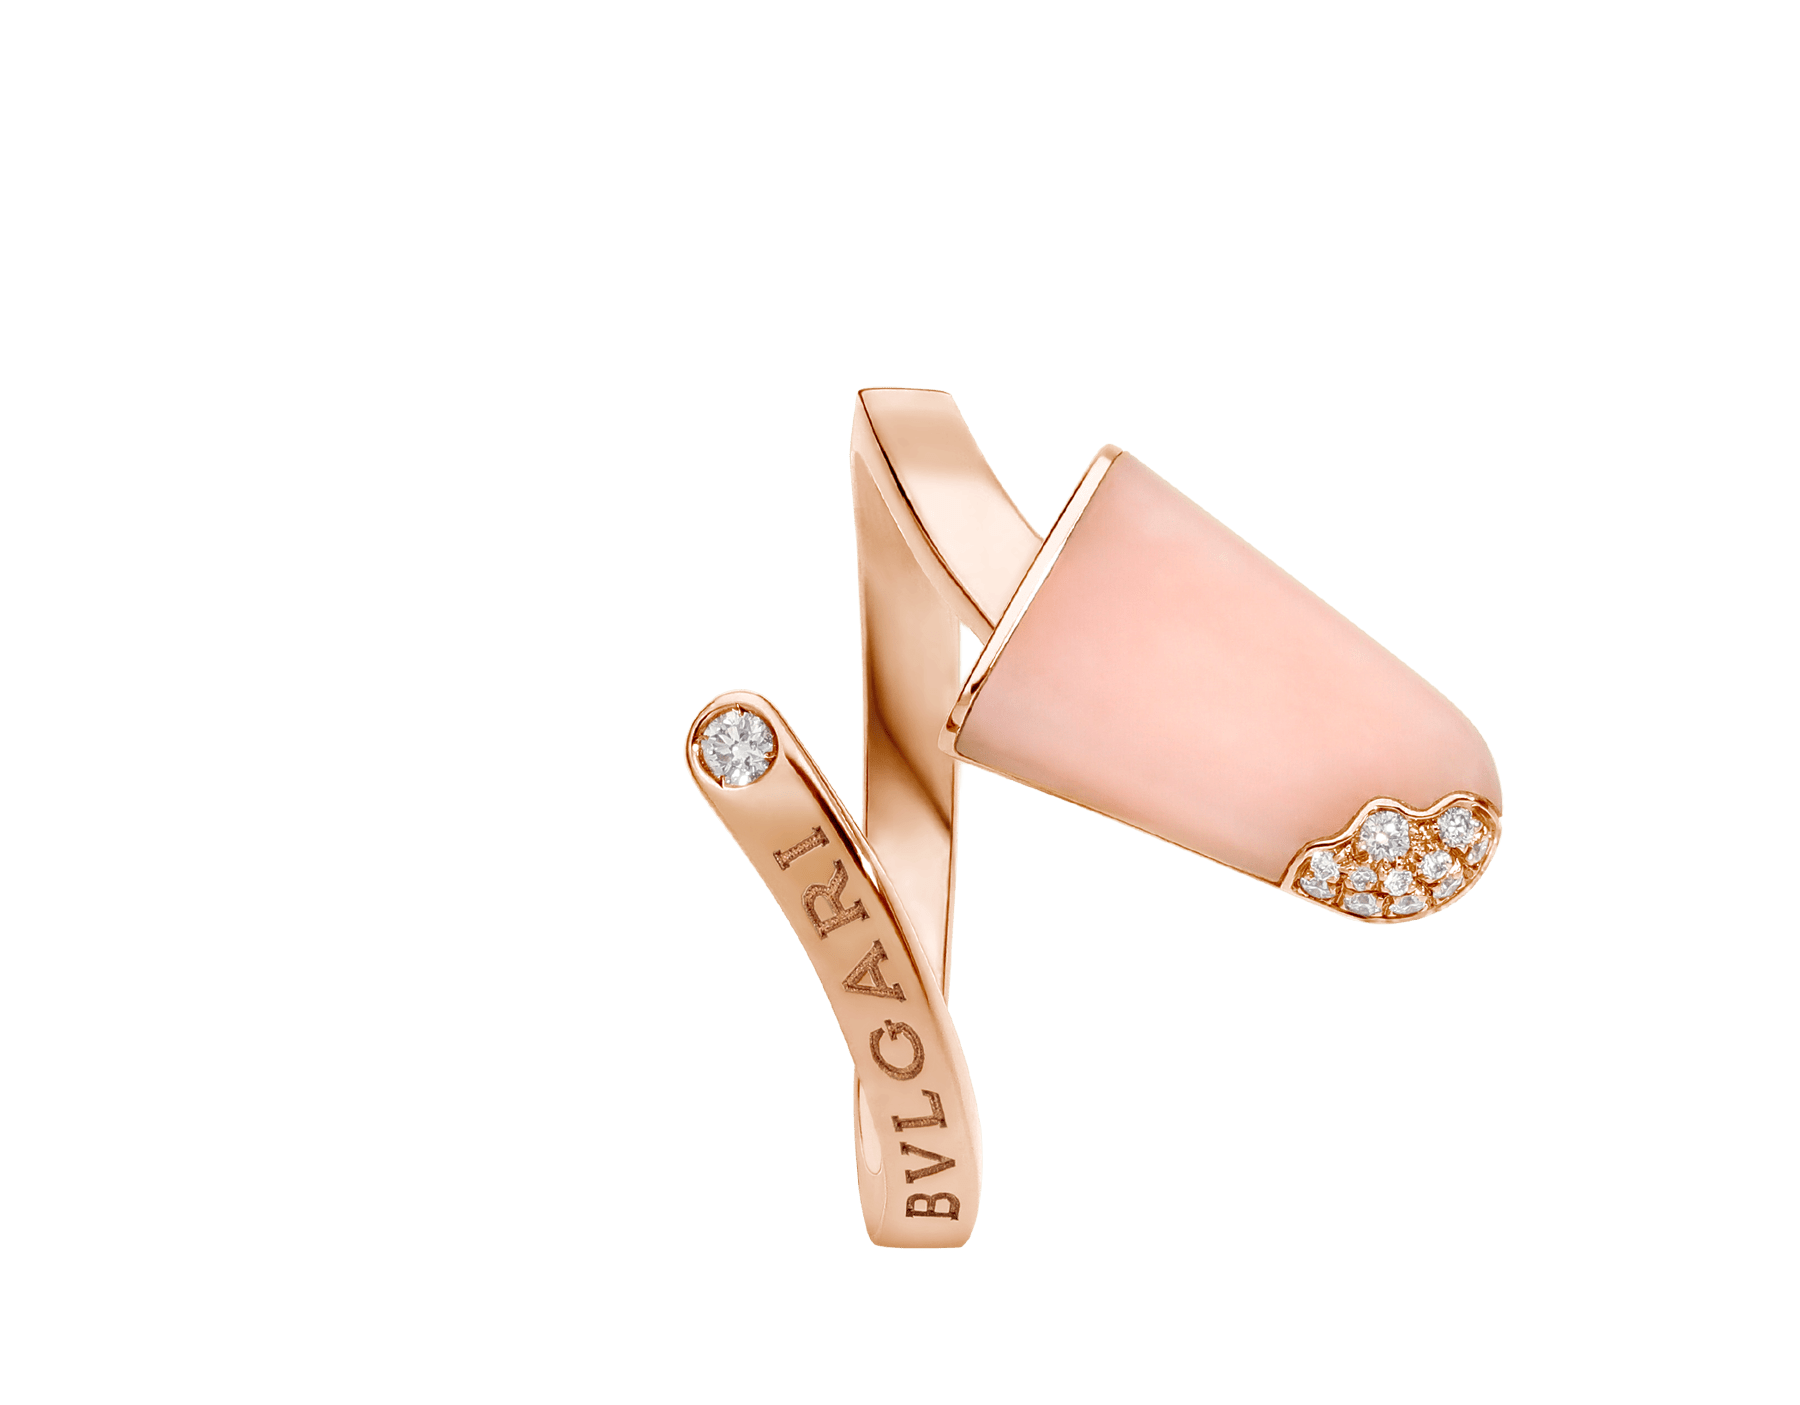 BVLGARI BVLGARI 18 kt rose gold ring set with pink opal and pavé diamonds AN858657 image 3